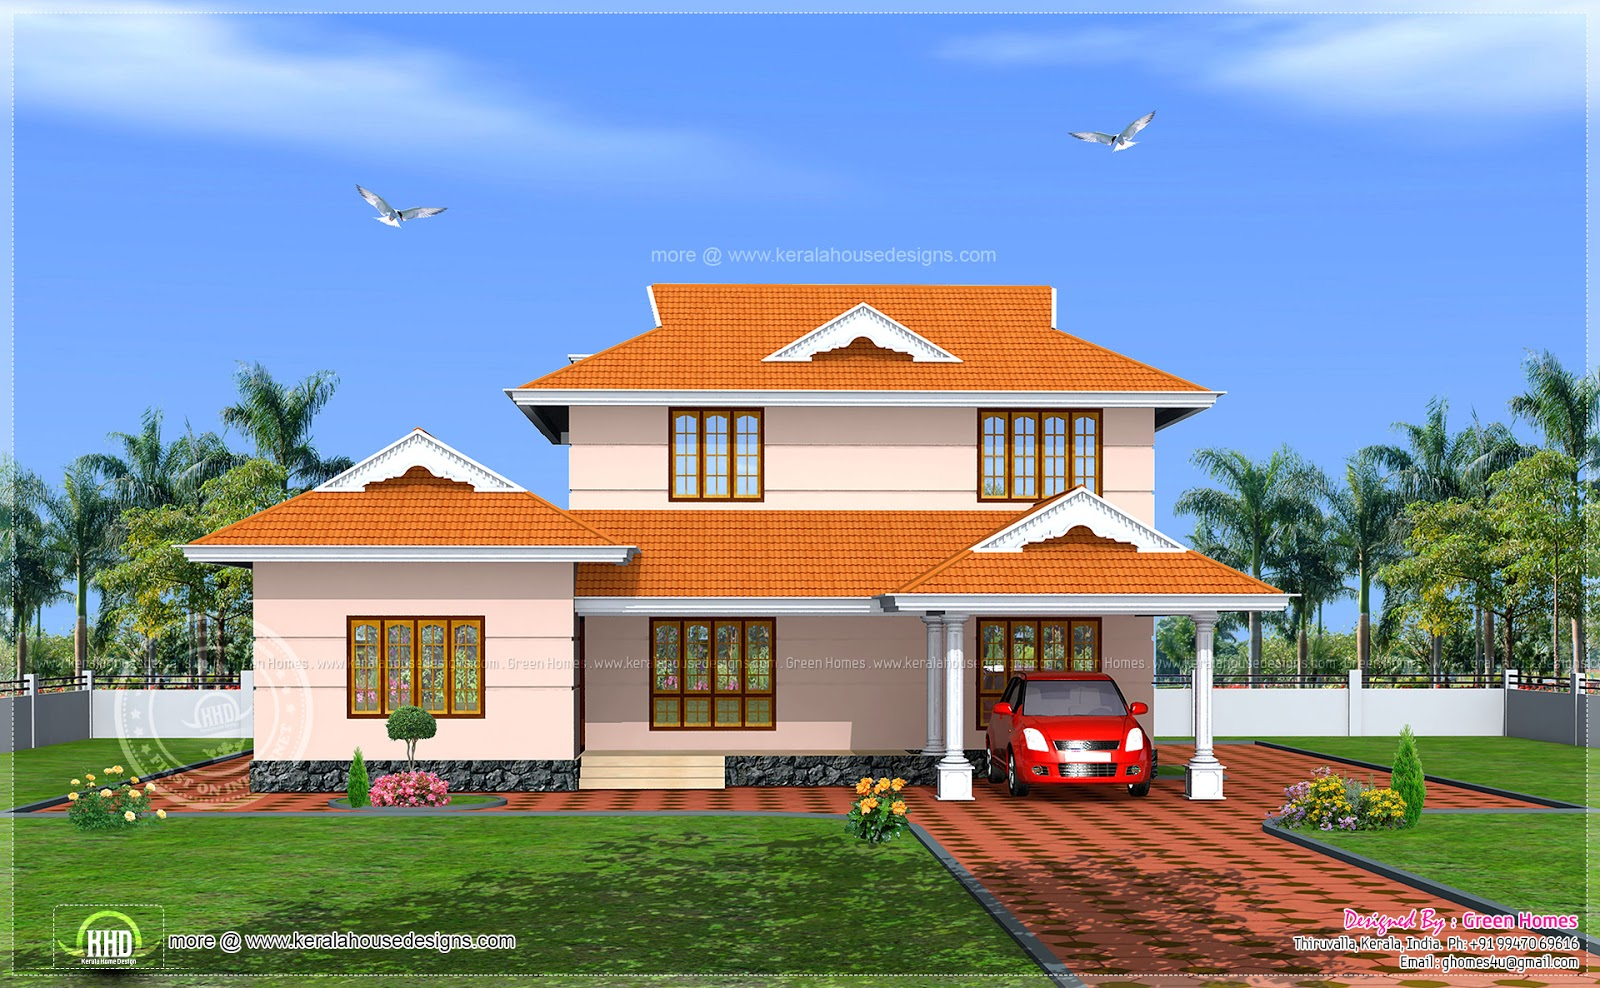 Home design kerala model house q - Kerala exterior model homes ...